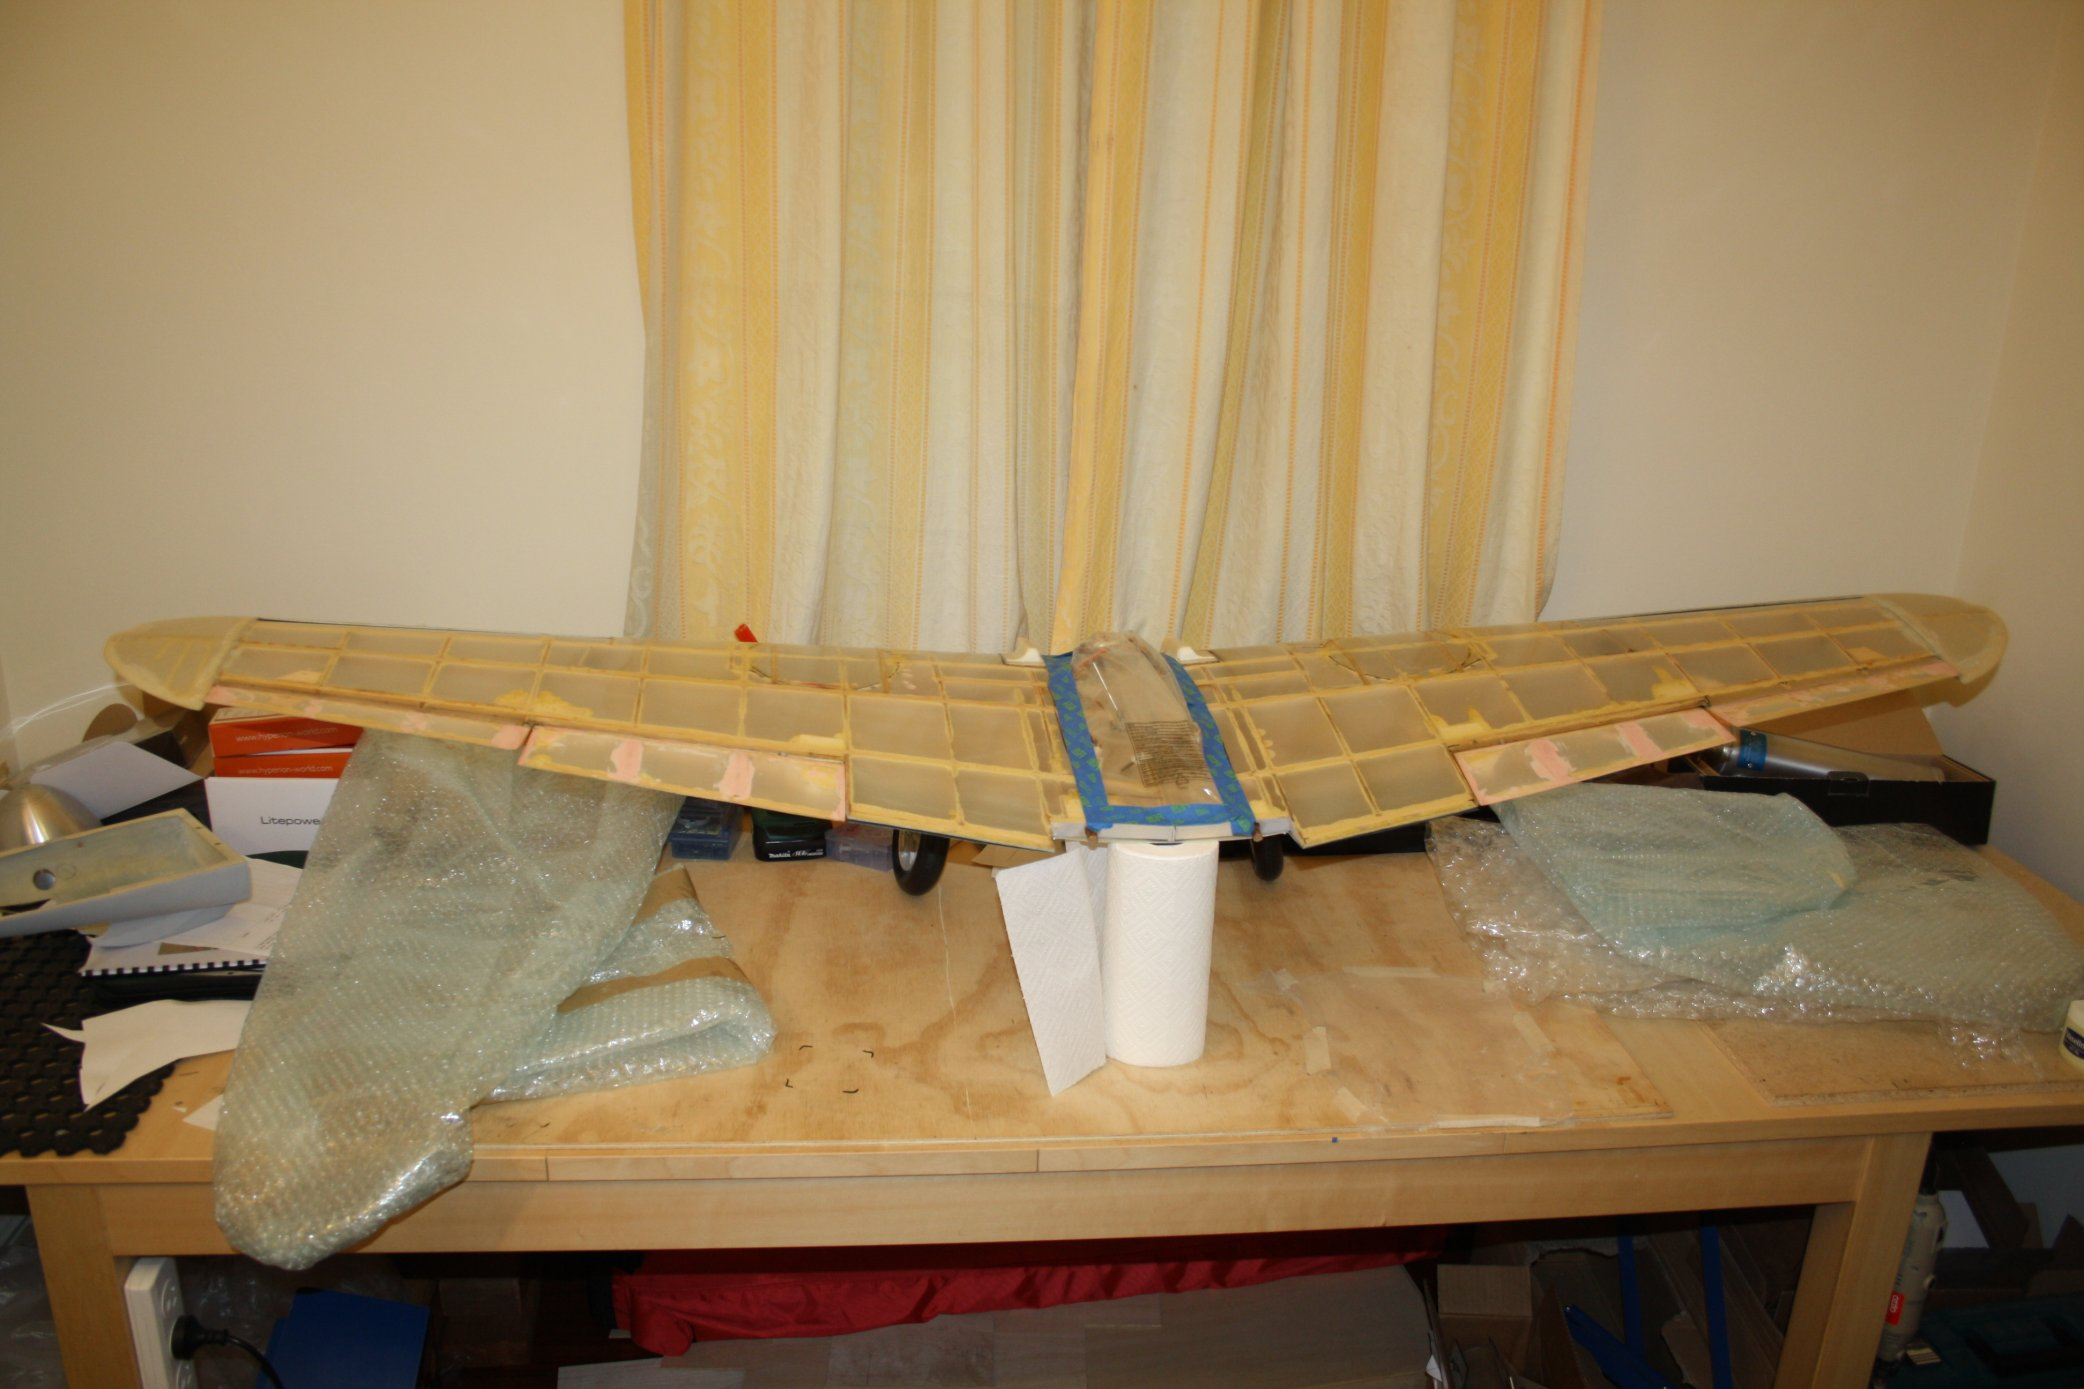 Click image for larger version  Name:2014_04_04 01 Wing prep for primer.JPG Views:60 Size:283.7 KB ID:1983980